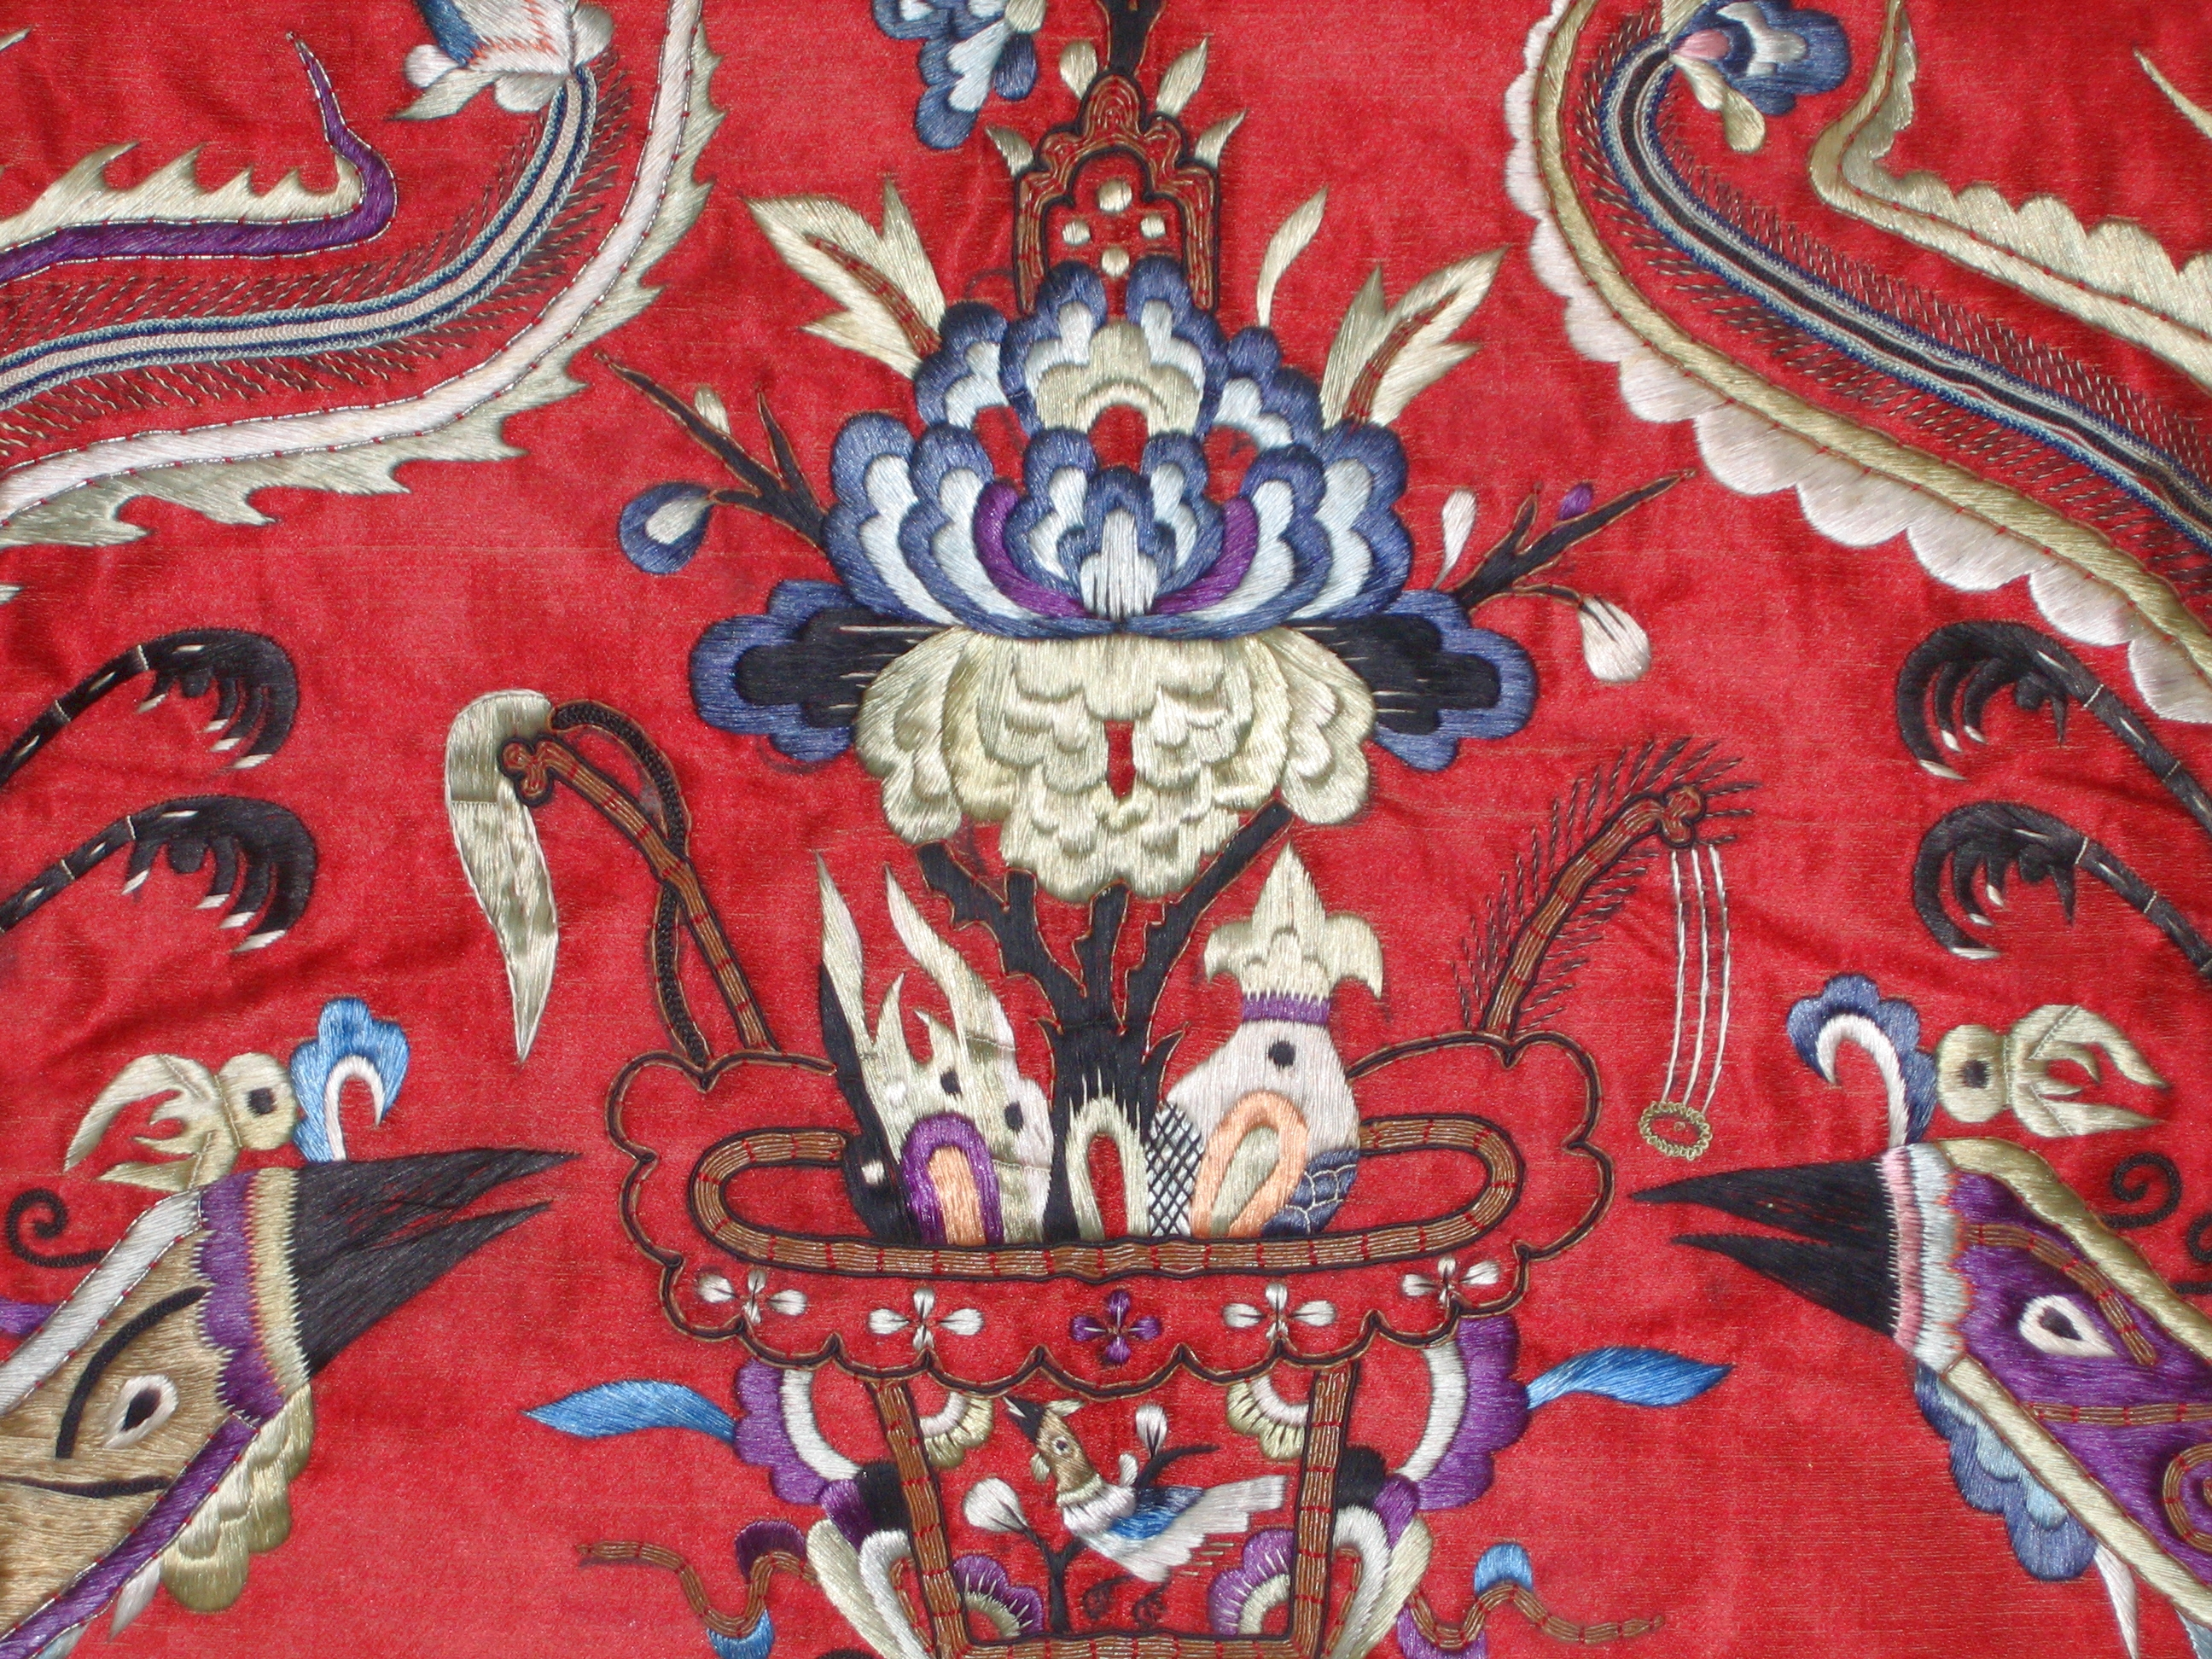 Chinese Antique Embroidery, Art, Picture, Tradition, Thread, HQ Photo